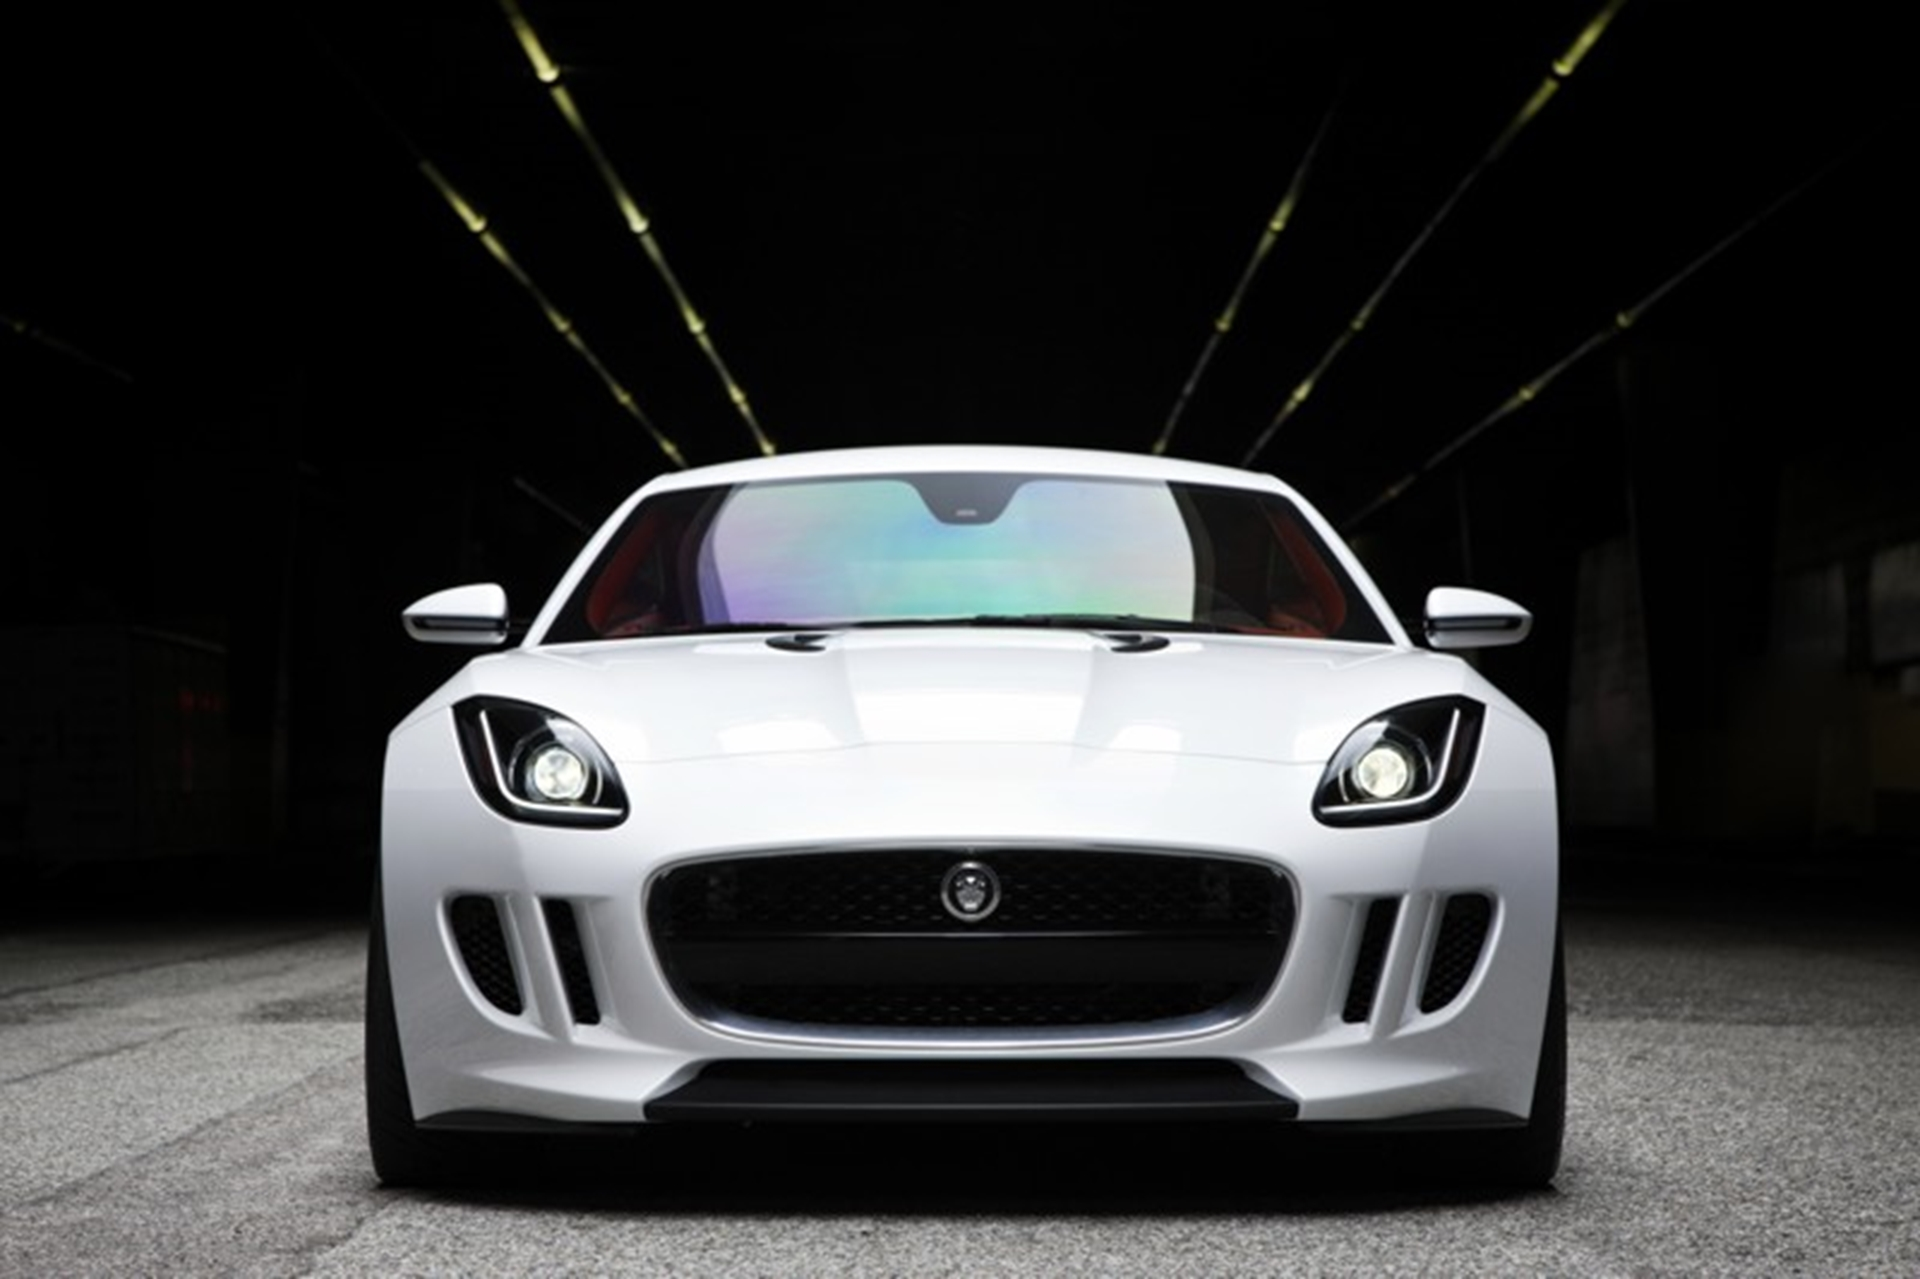 The Jaguar C-X16 Concept